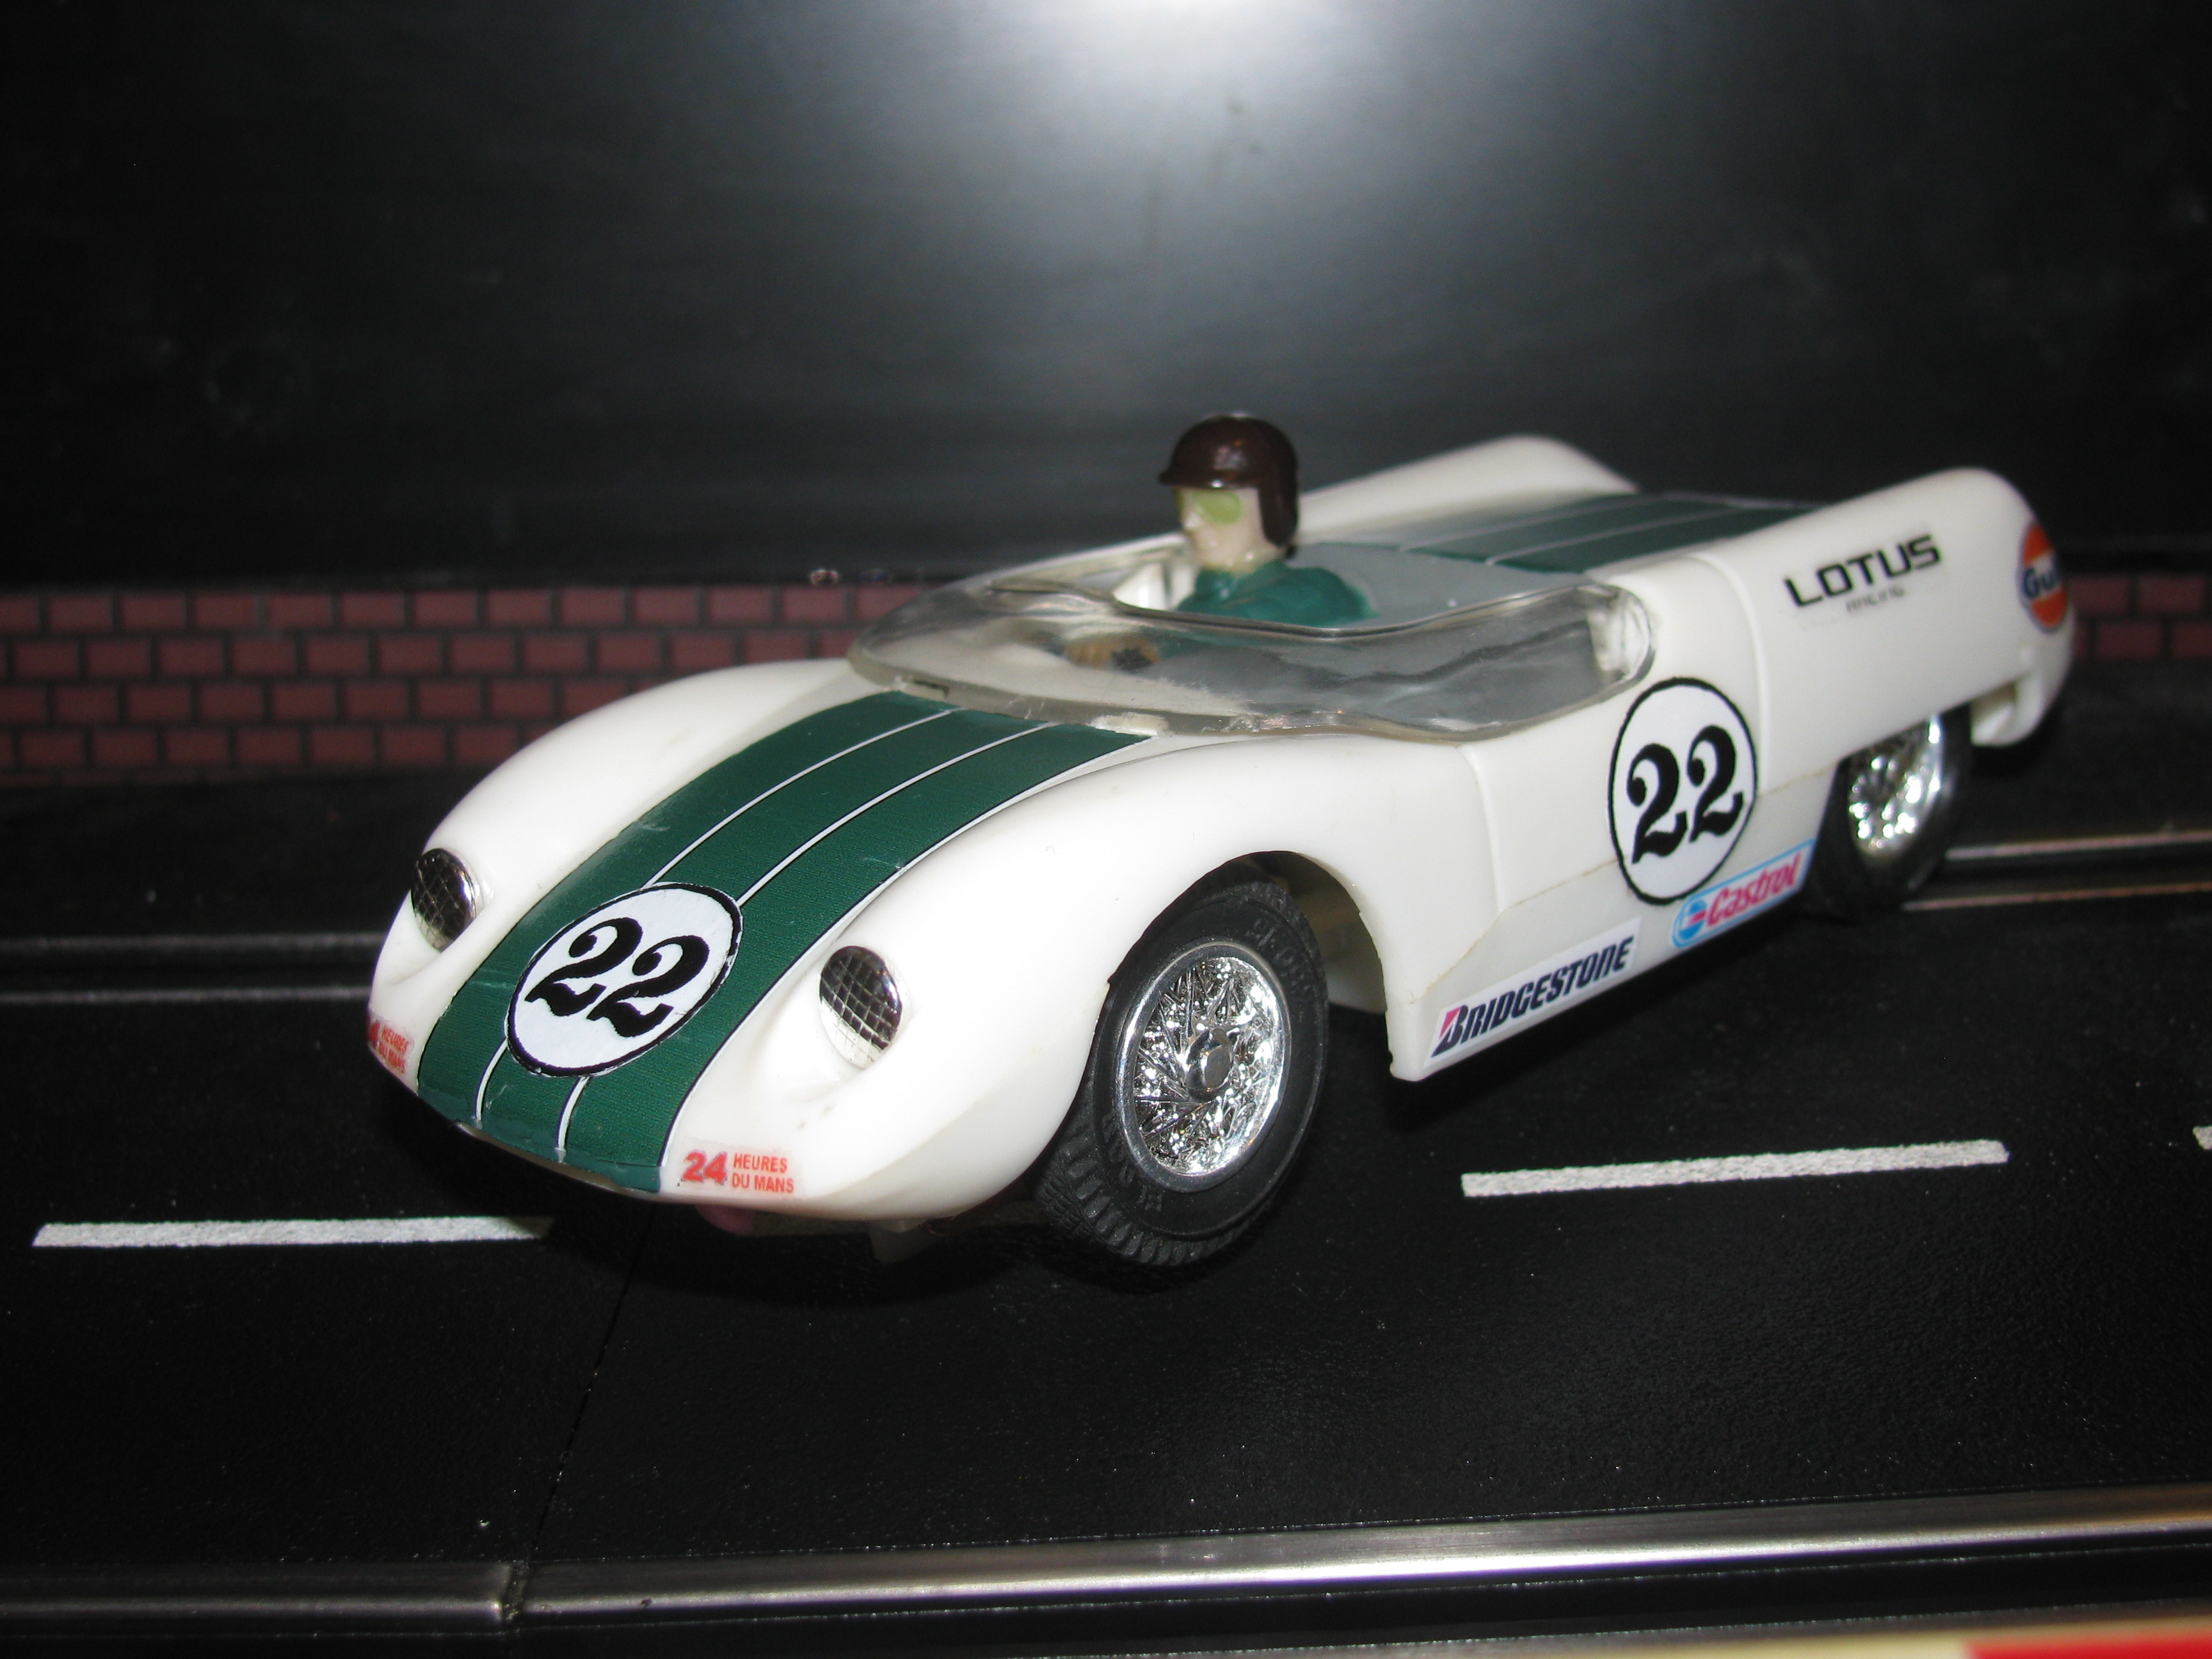 * SOLD * Vintage 1960 Lotus 19 2.5L Climax Slot Car 1/32 Scale – White – Car#22